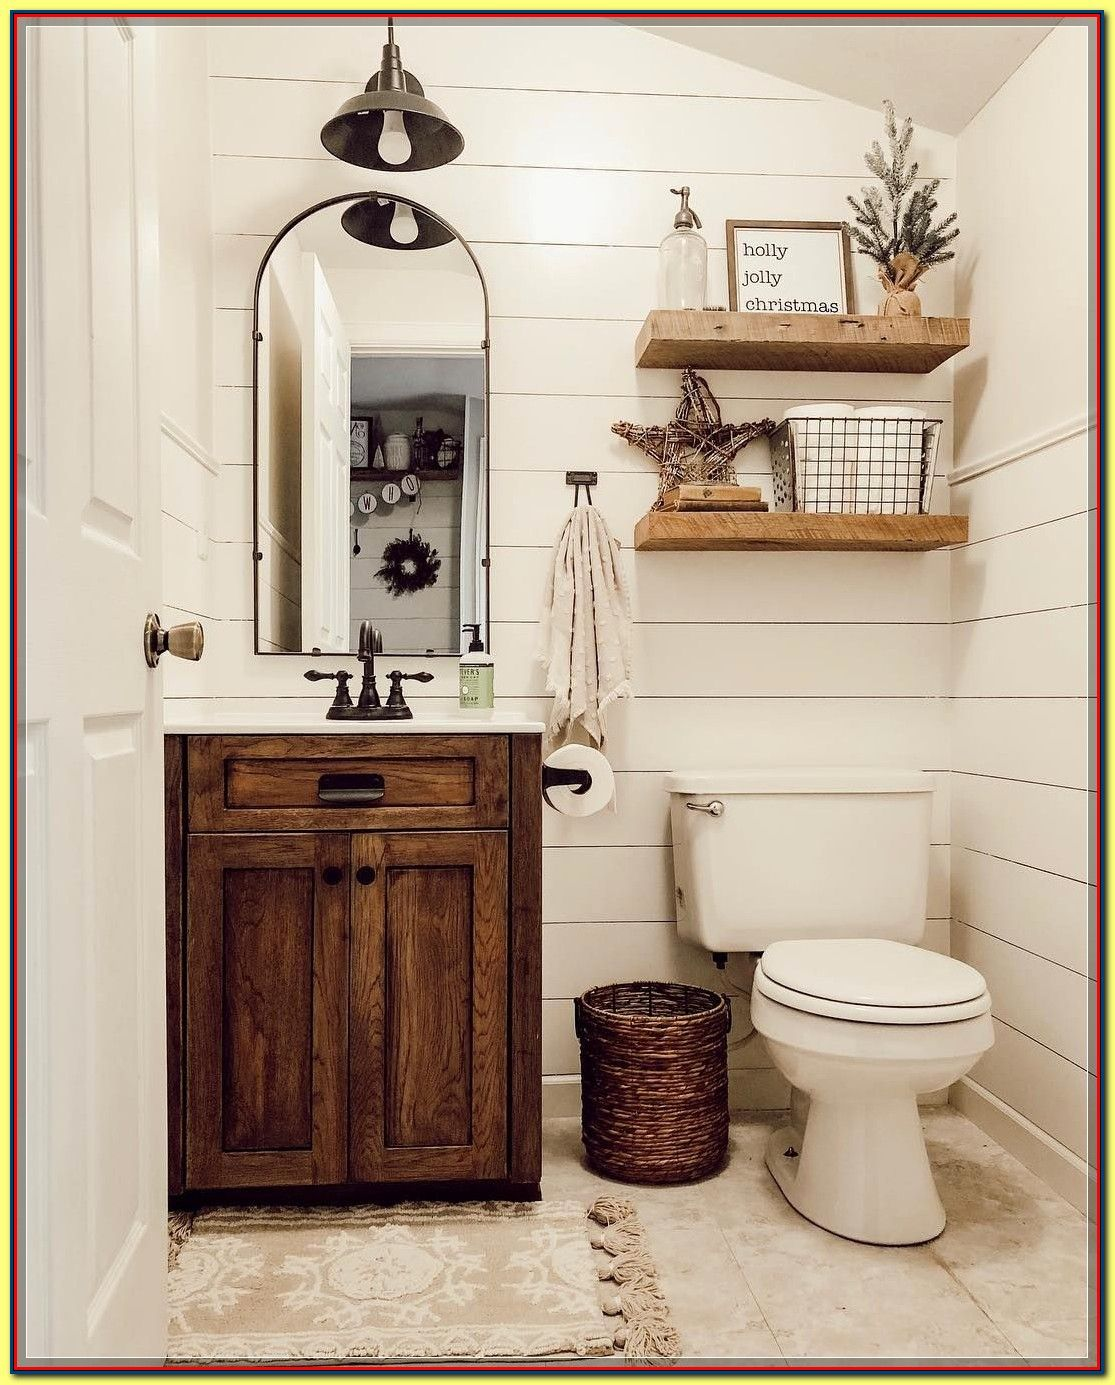 Awesome Bathroom Decorating Ideas On A Budget Find More At The Image Link In 2020 Tiny Powder Rooms Bathroom Redo Bathroom Makeover